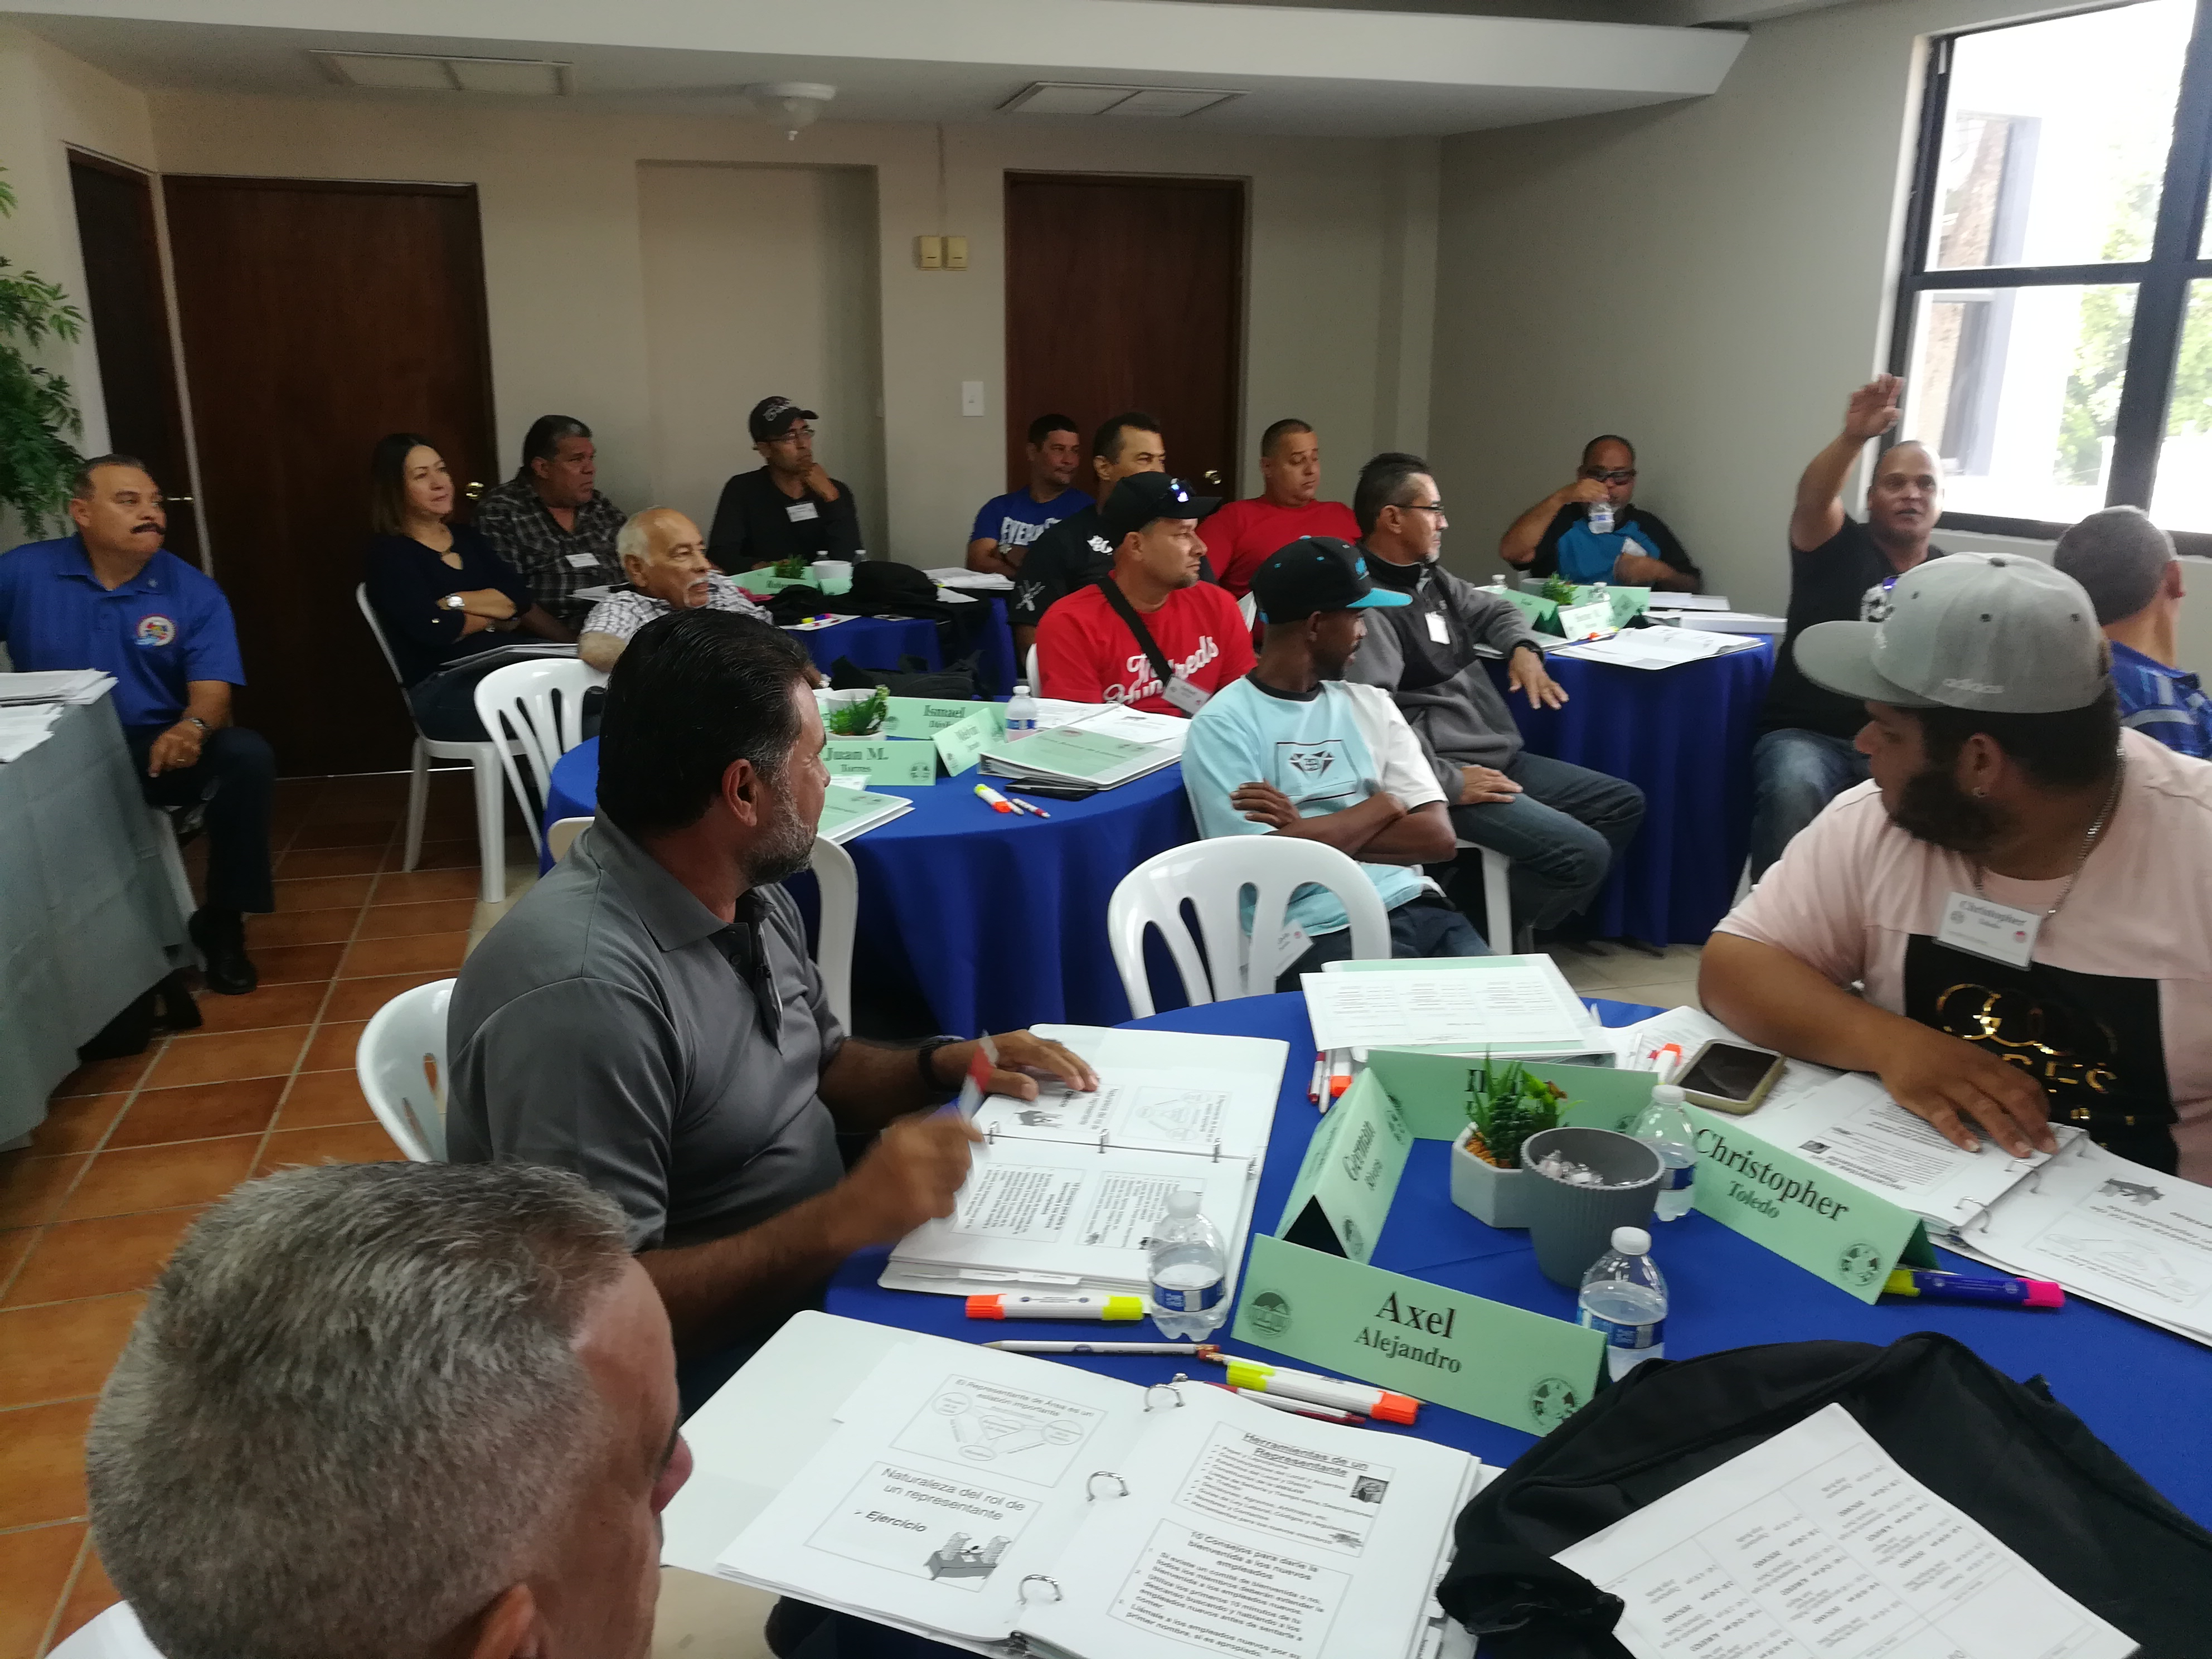 Machinists and Carpenters Constructing Labor Solidarity in Puerto Rico